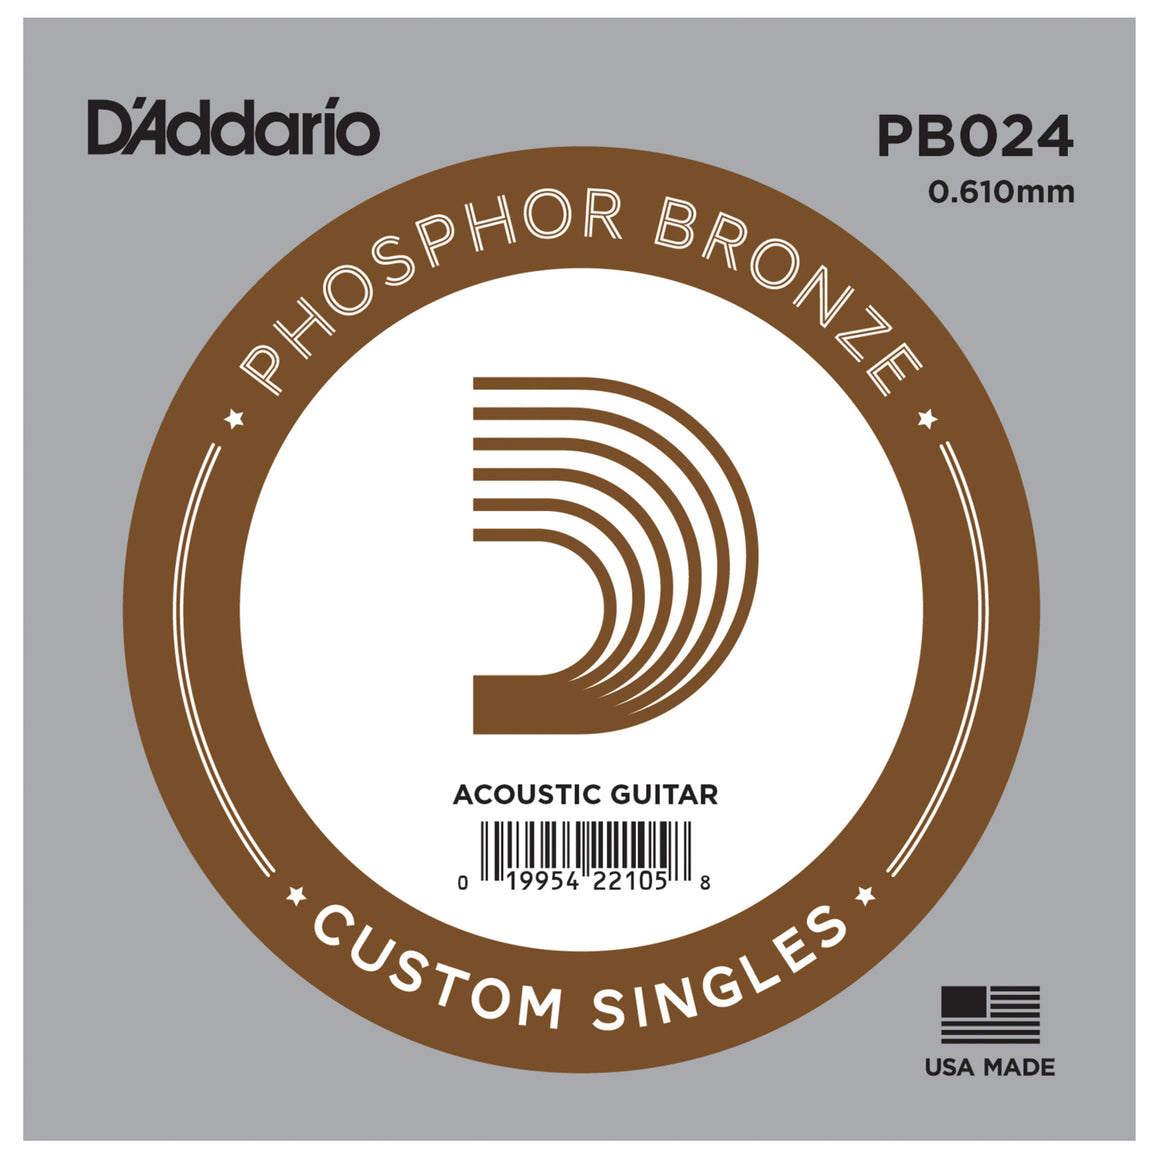 D'Addario PB024 Phosphor Bronze Single Acoustic Guitar String .024